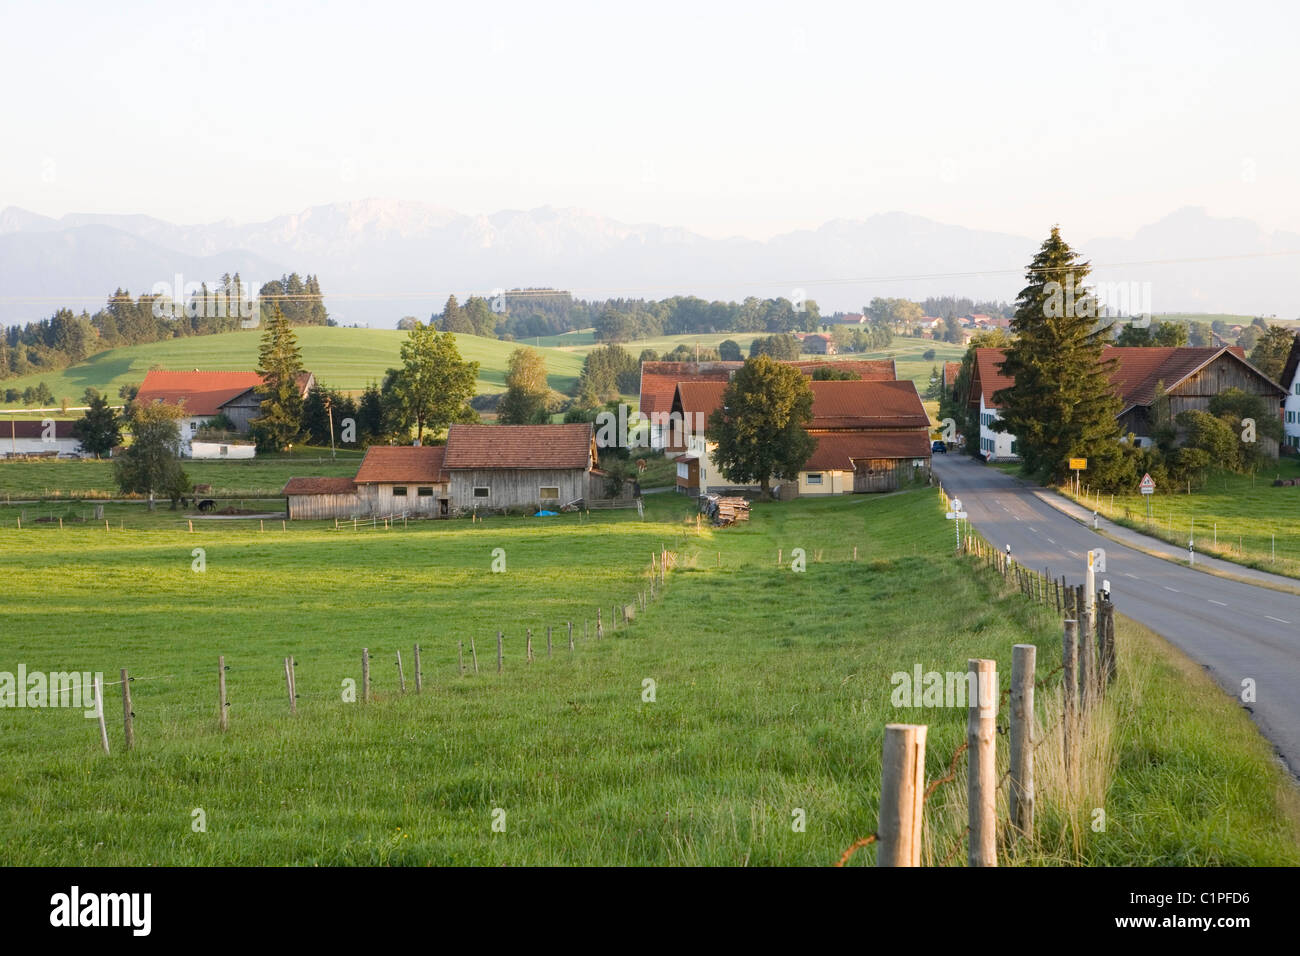 Germany, Bavaria, village with fields and country road - Stock Image